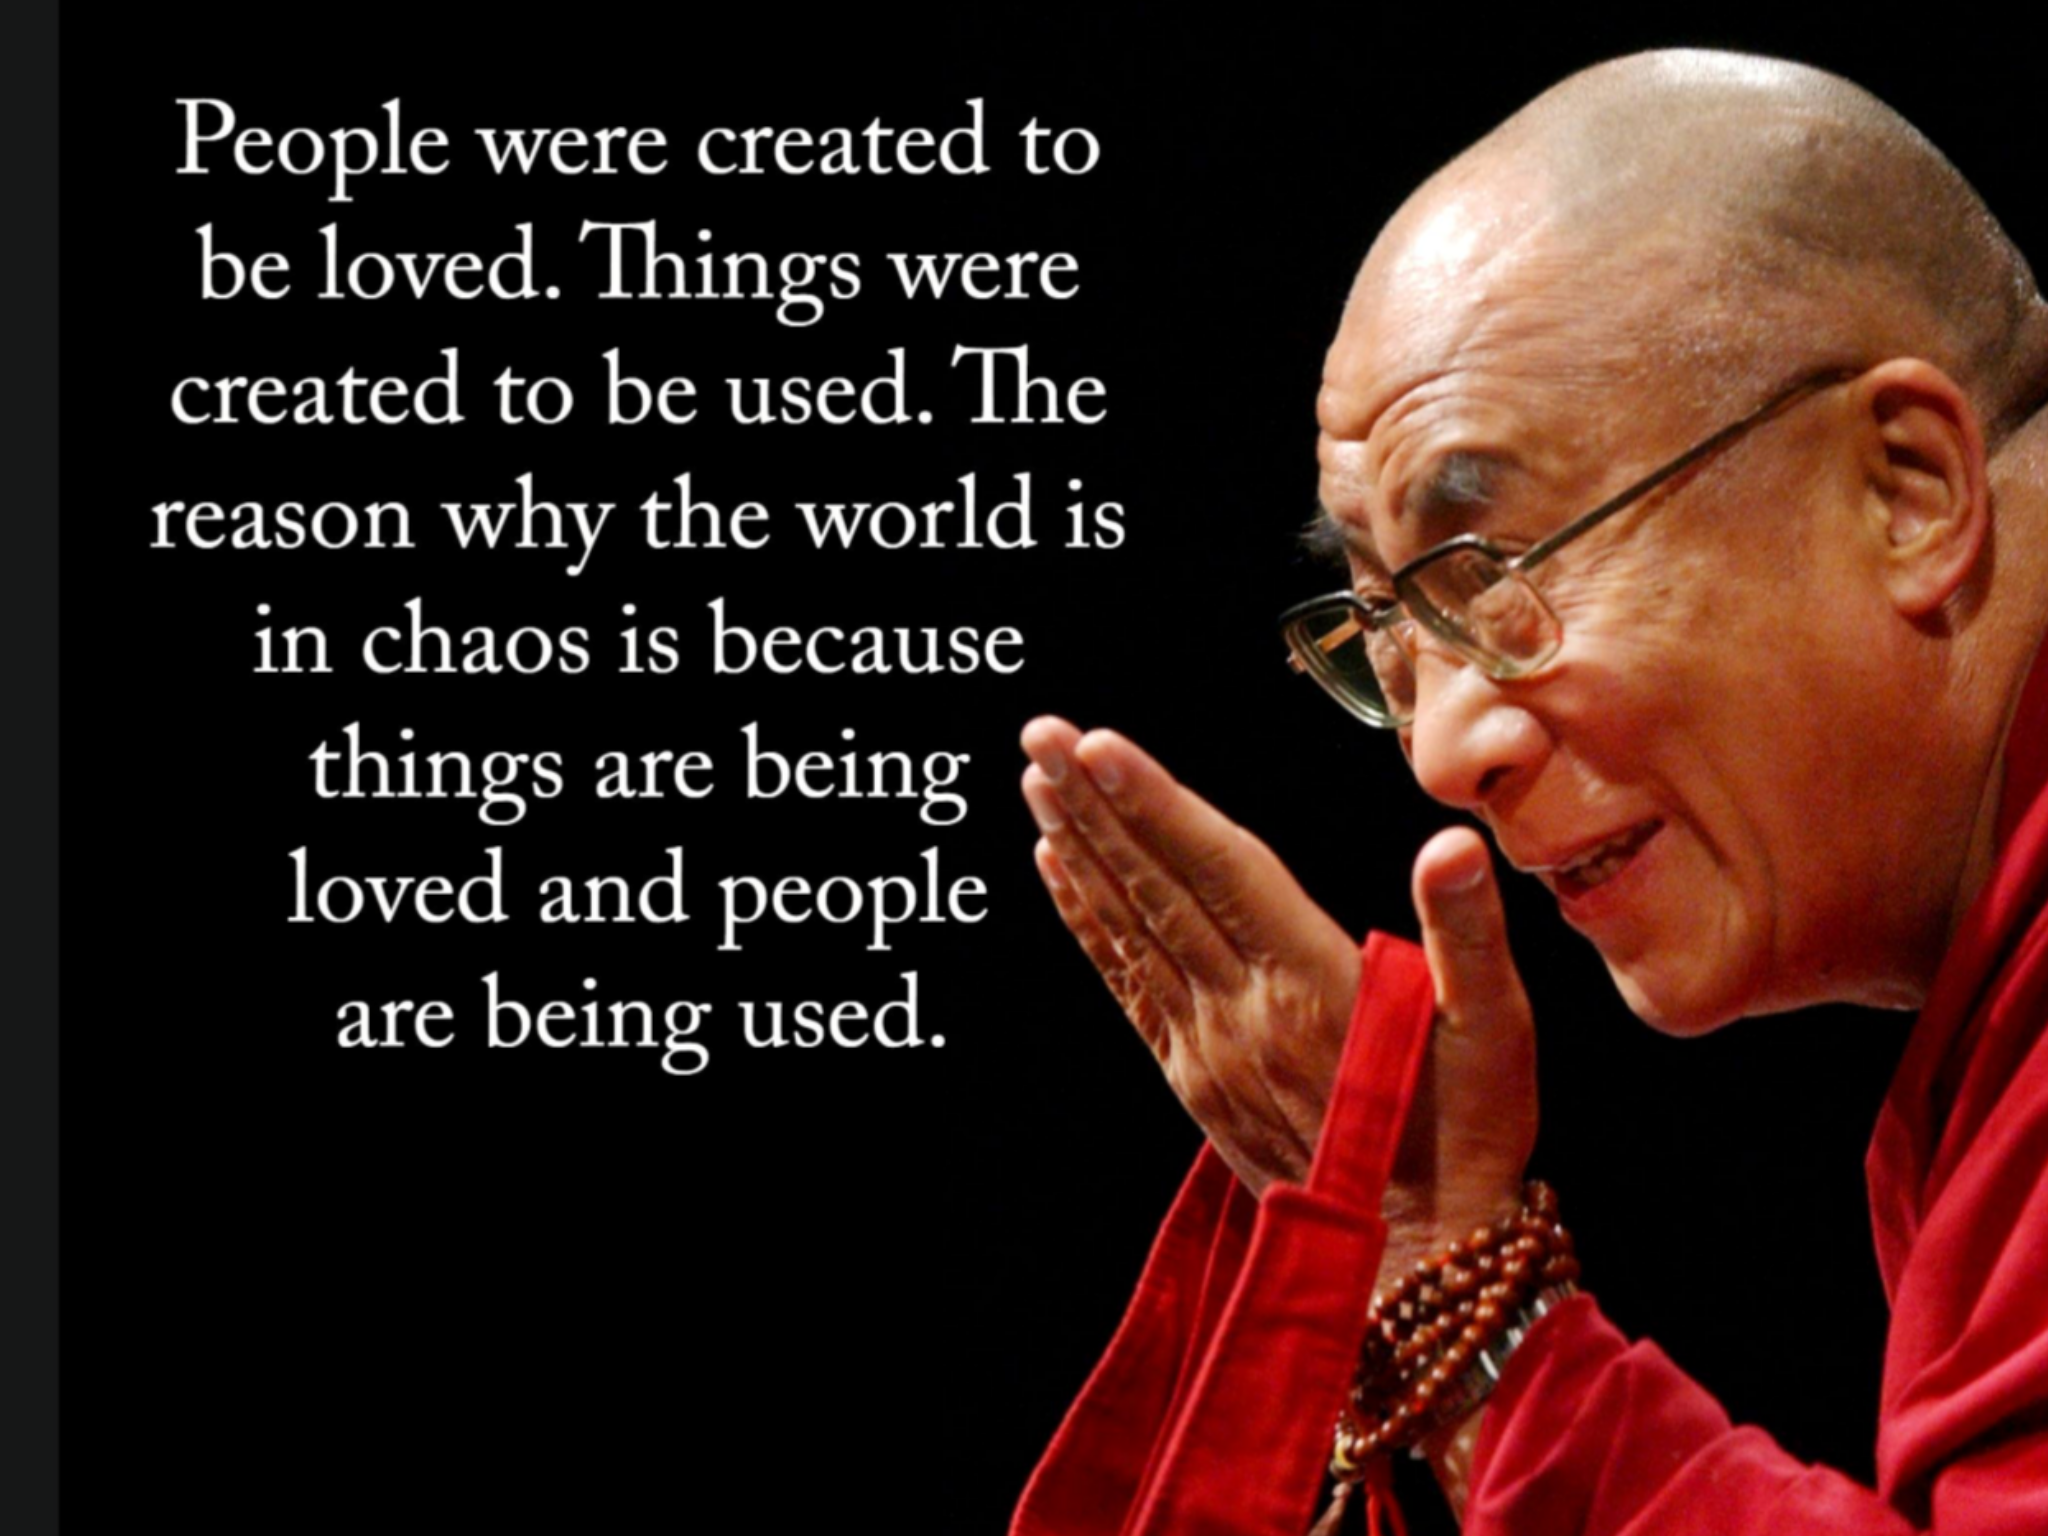 images about dalai lama wild women peace and 1000 images about dalai lama wild women peace and quotes on positive thinking